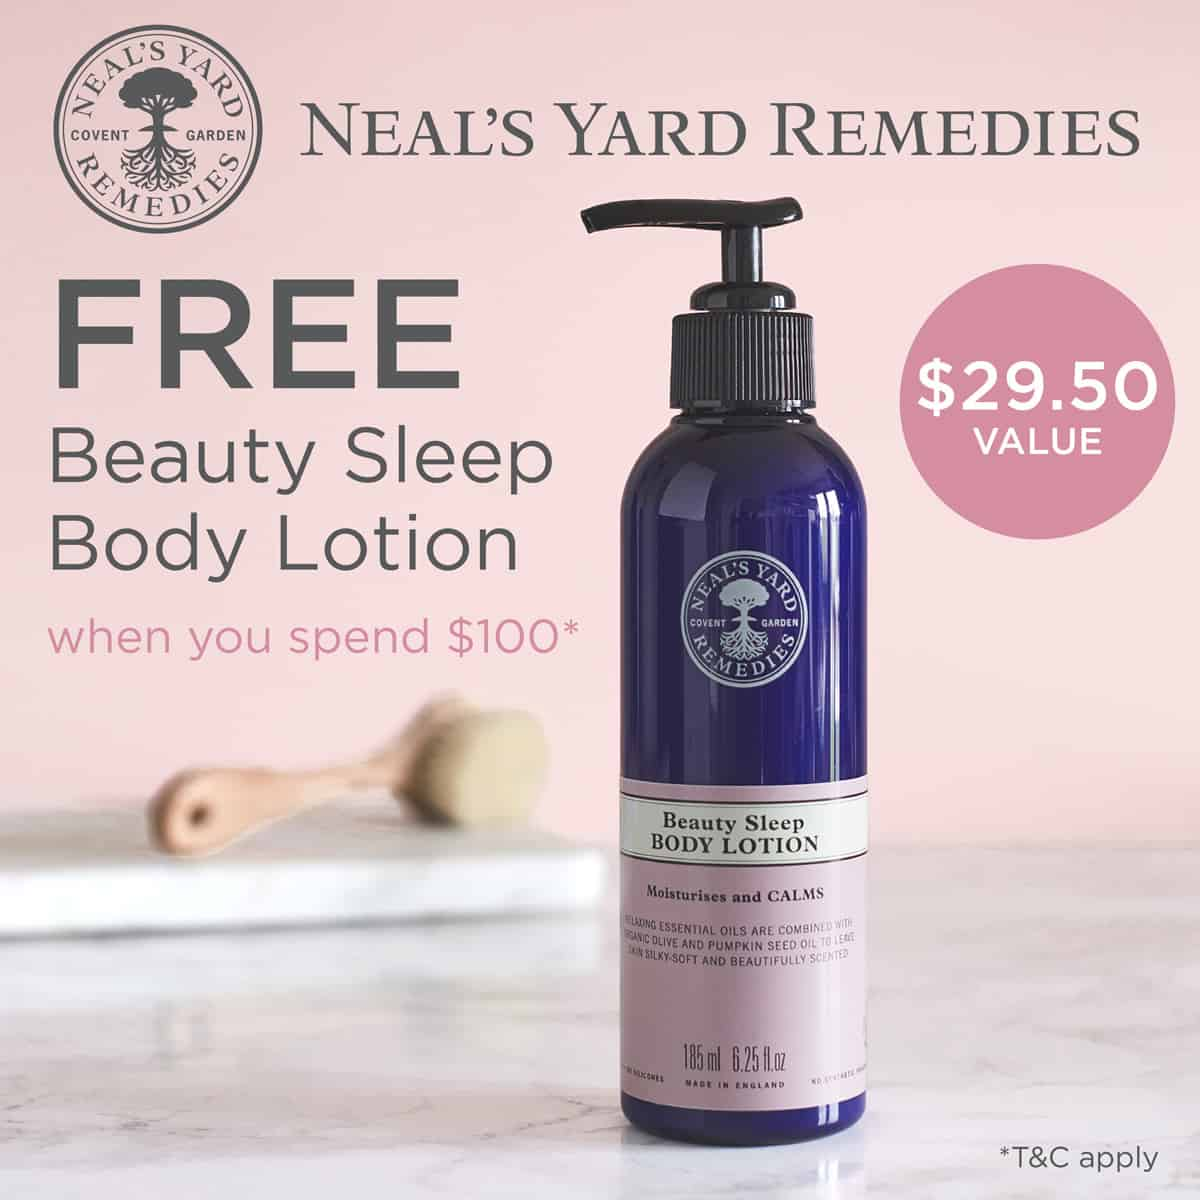 nyr organic beauty sleep body lotion free with $100 purchase in march 2019.